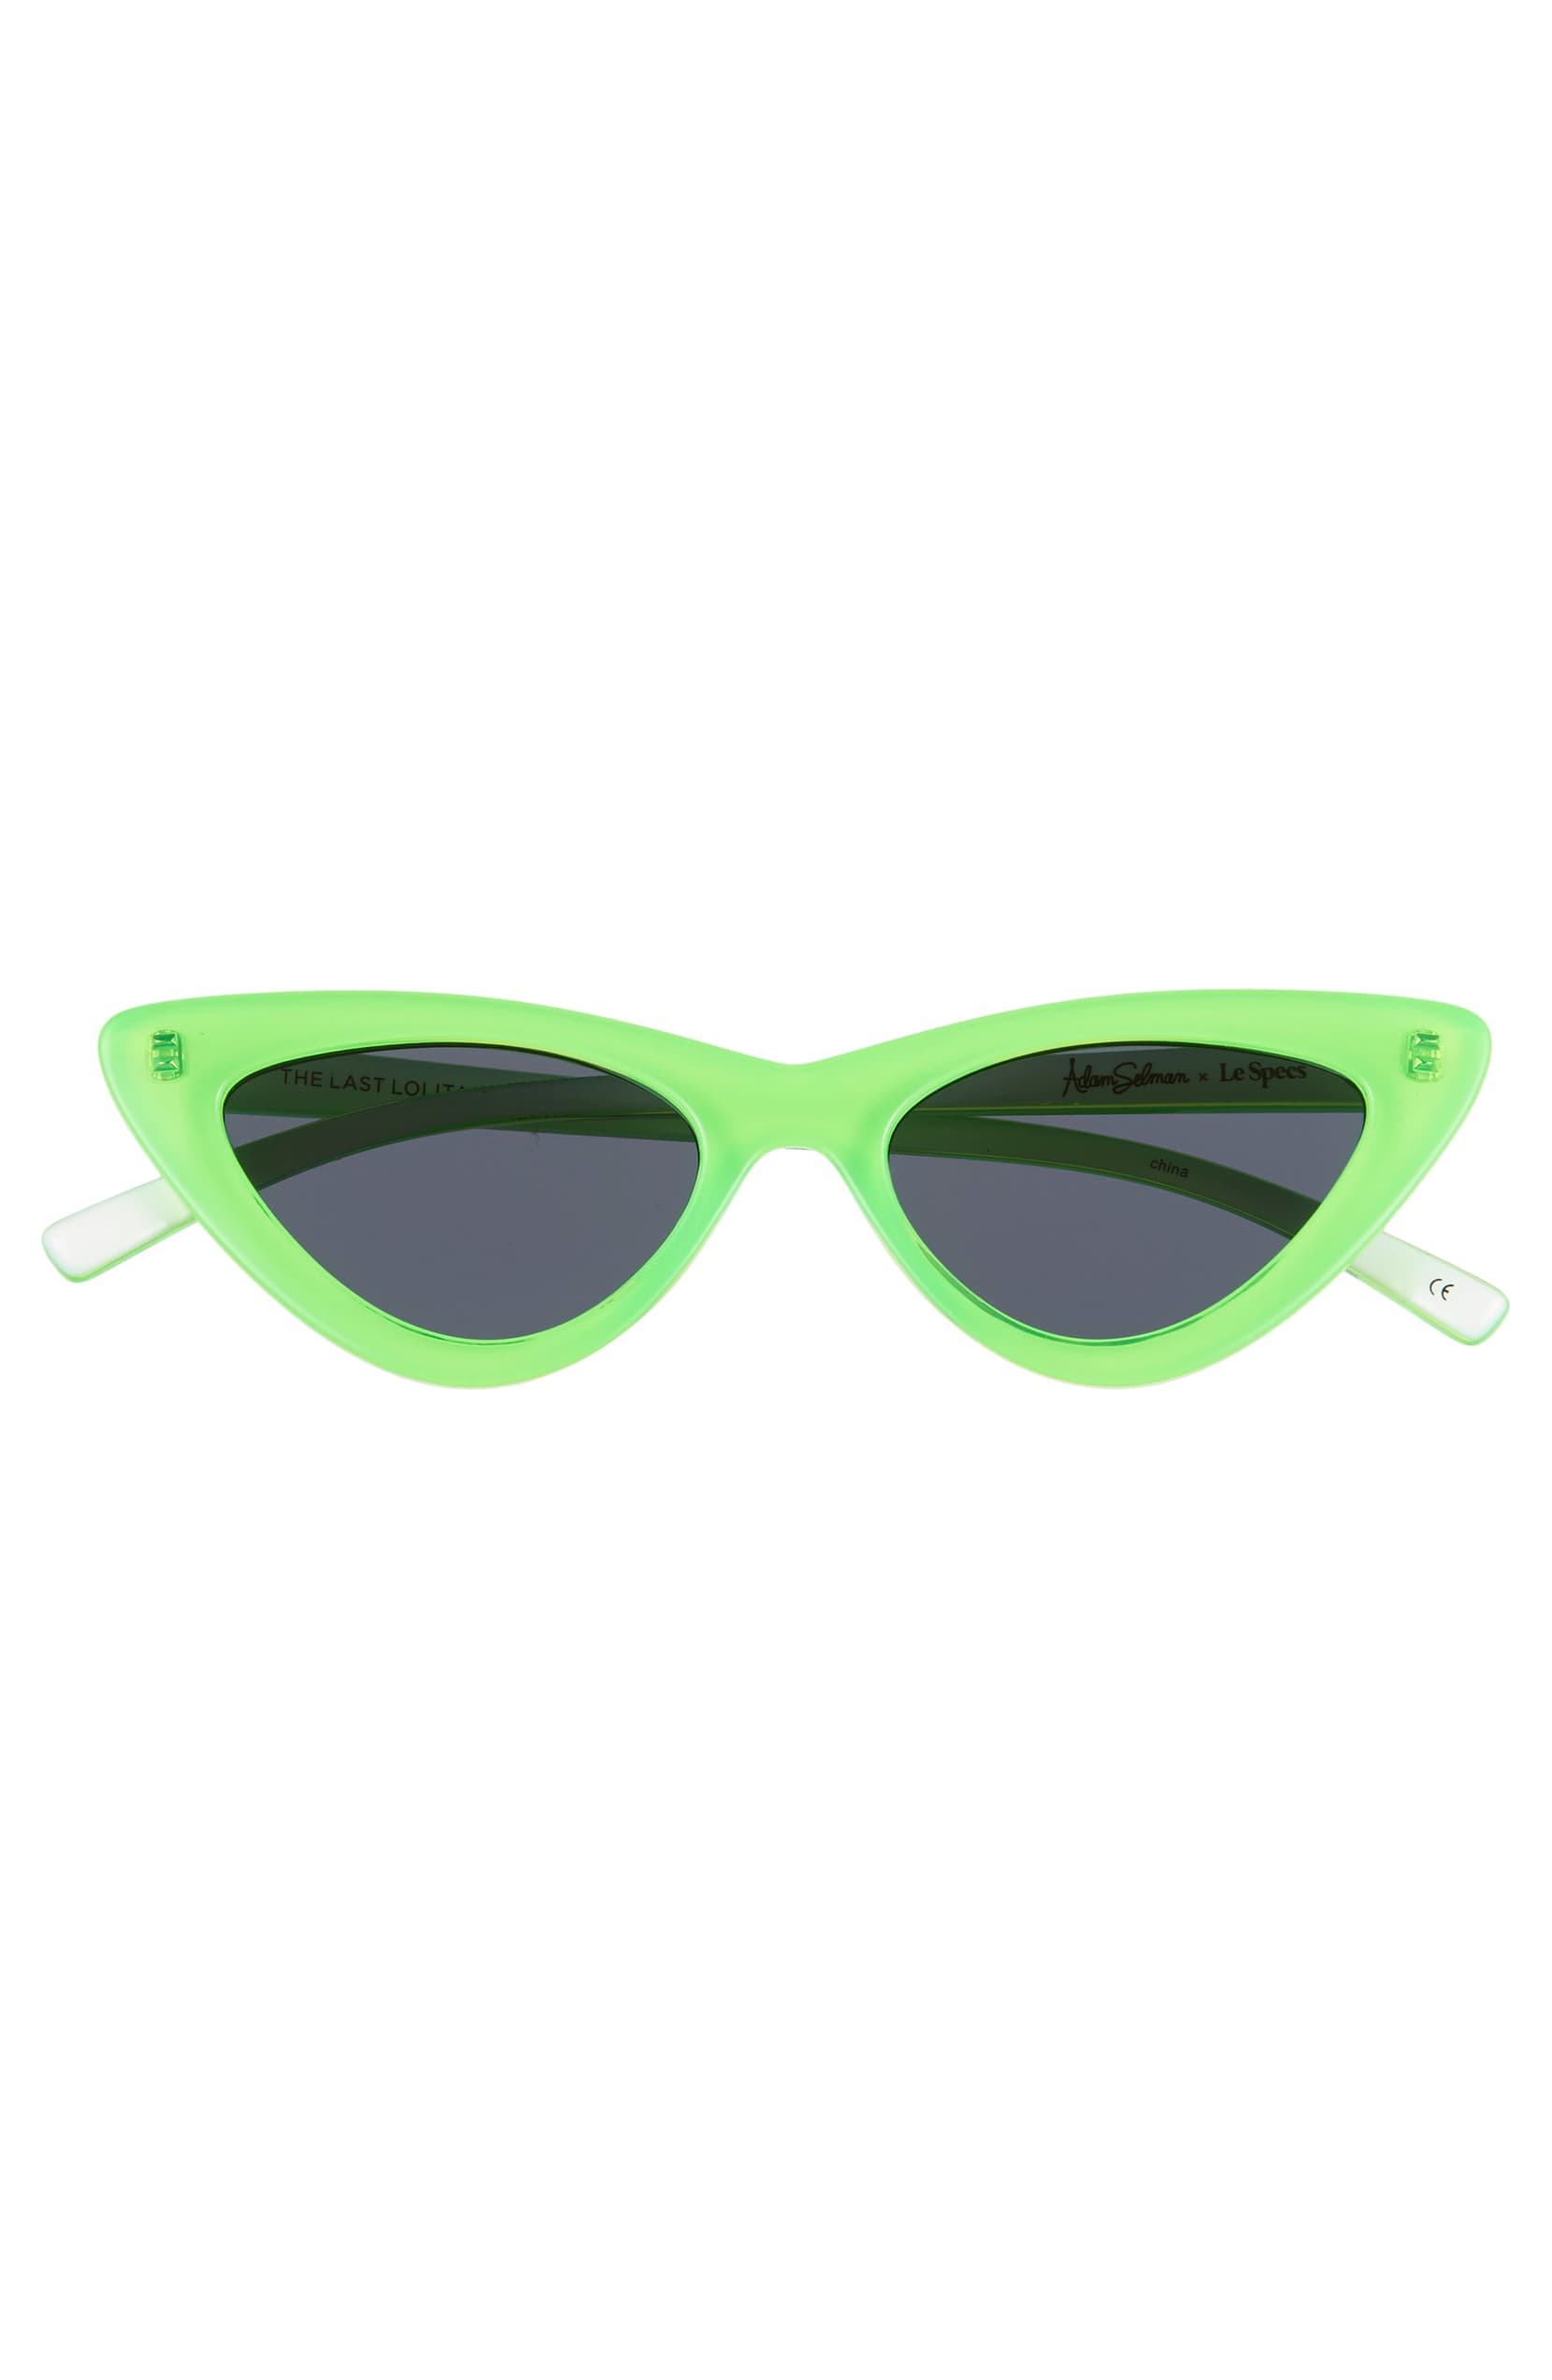 Adam Selman cat-eye sunglasses